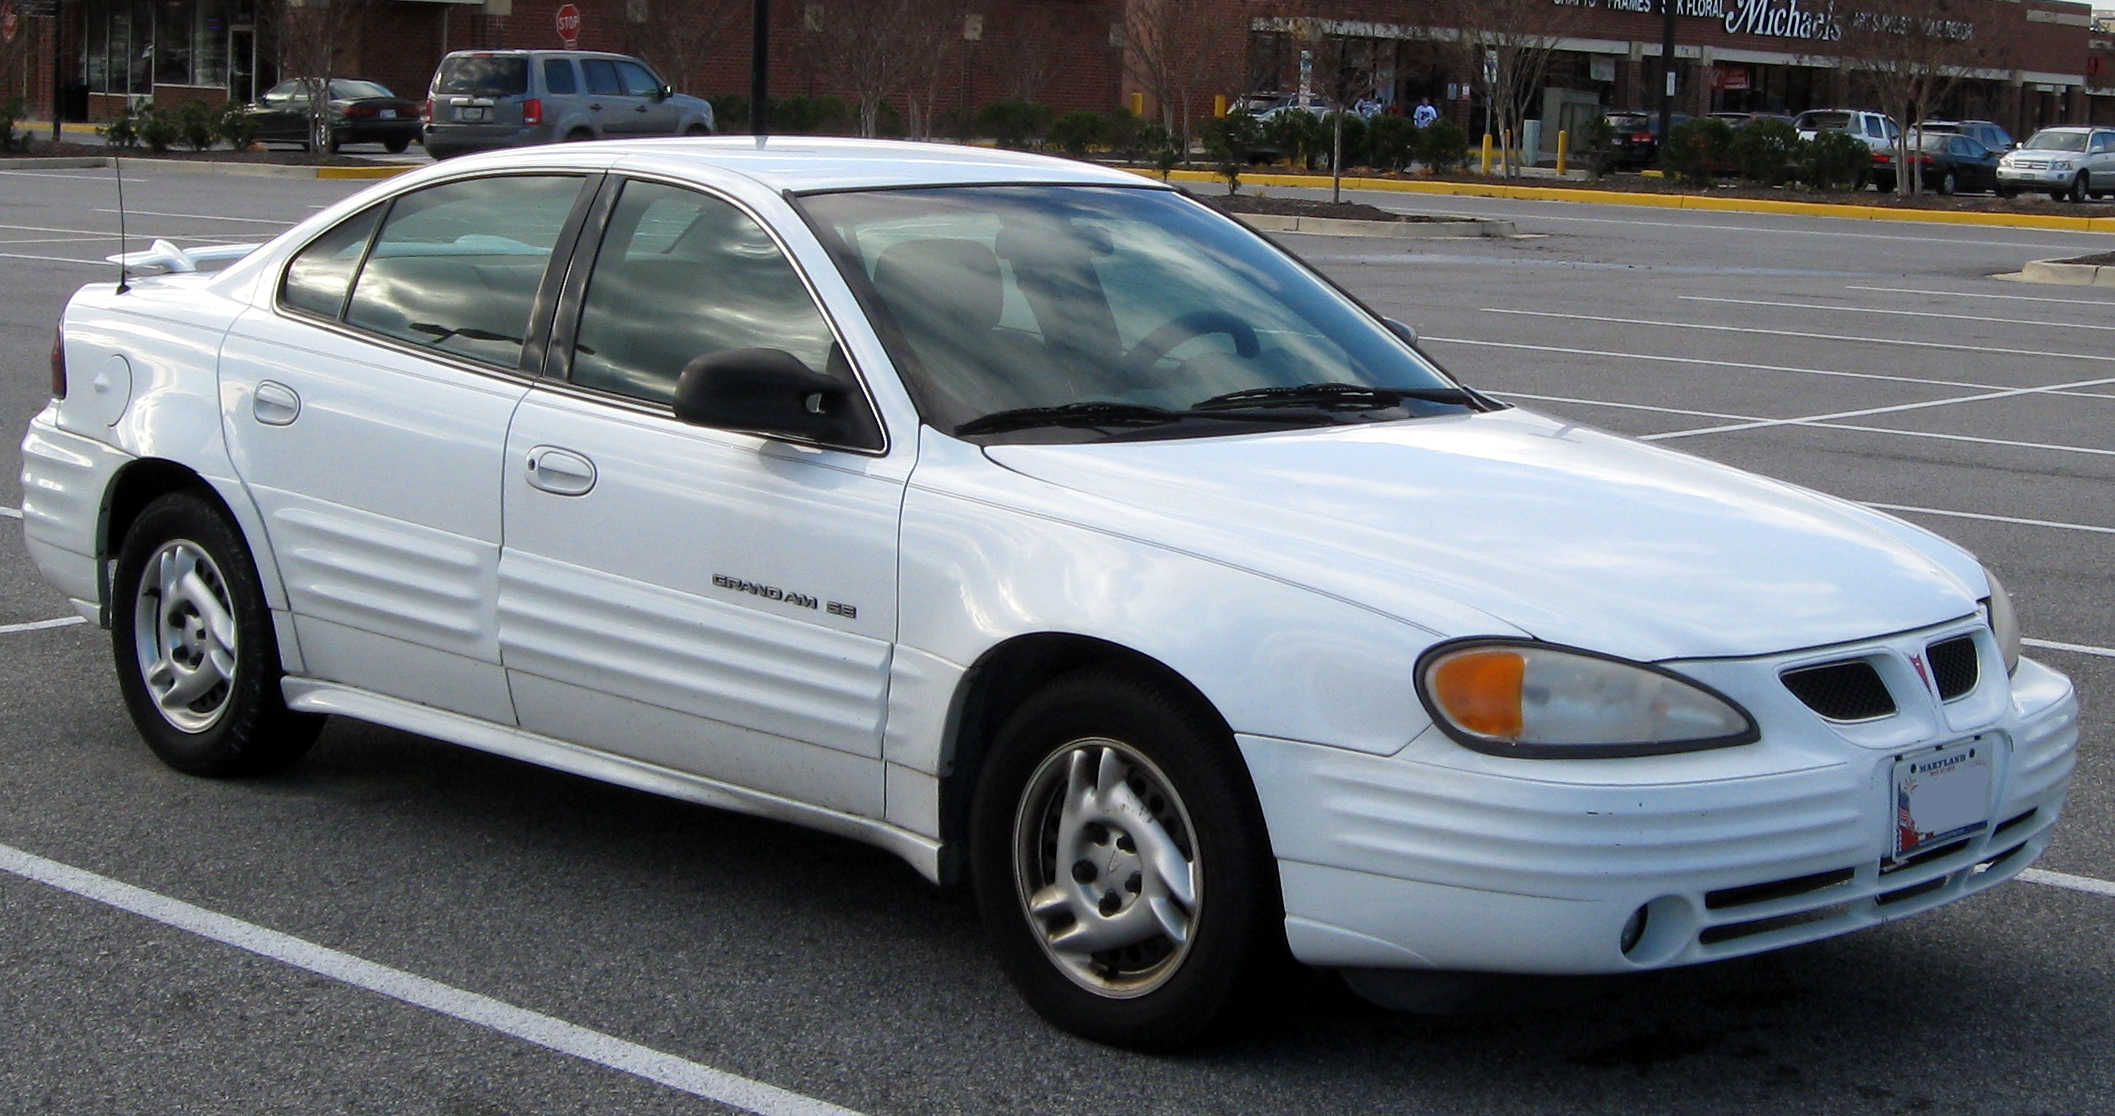 Pontiac Grand Am #6